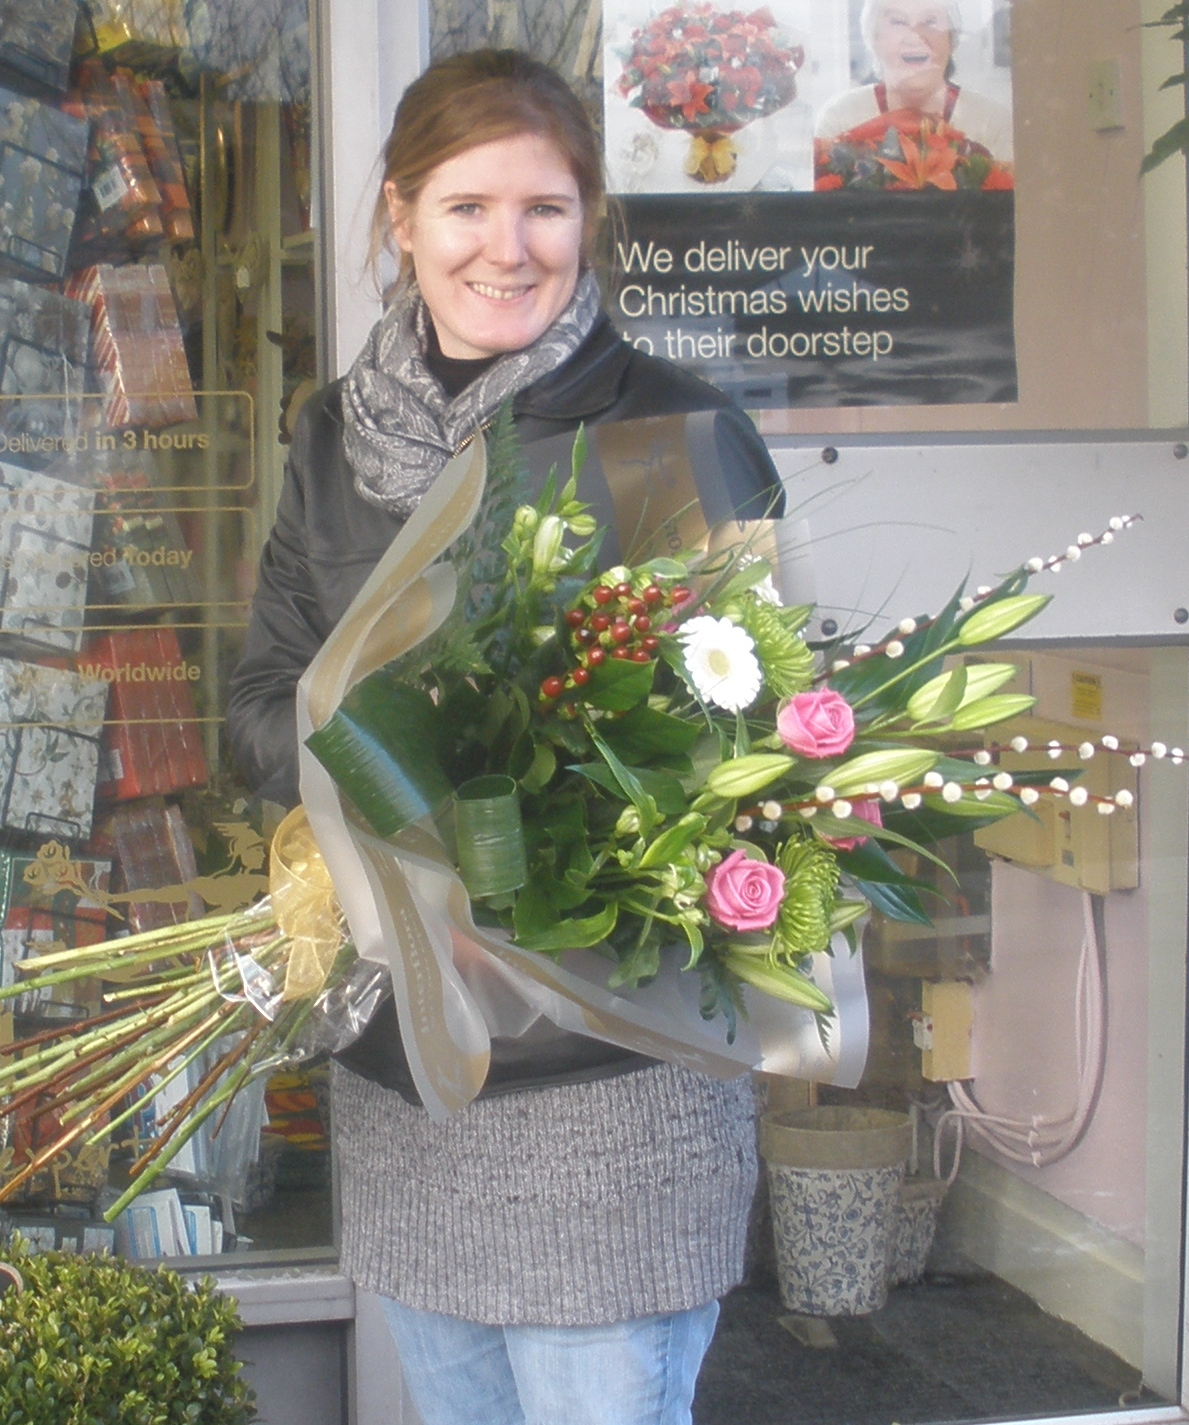 We are Hiring - Looking for a Florist Apprentice